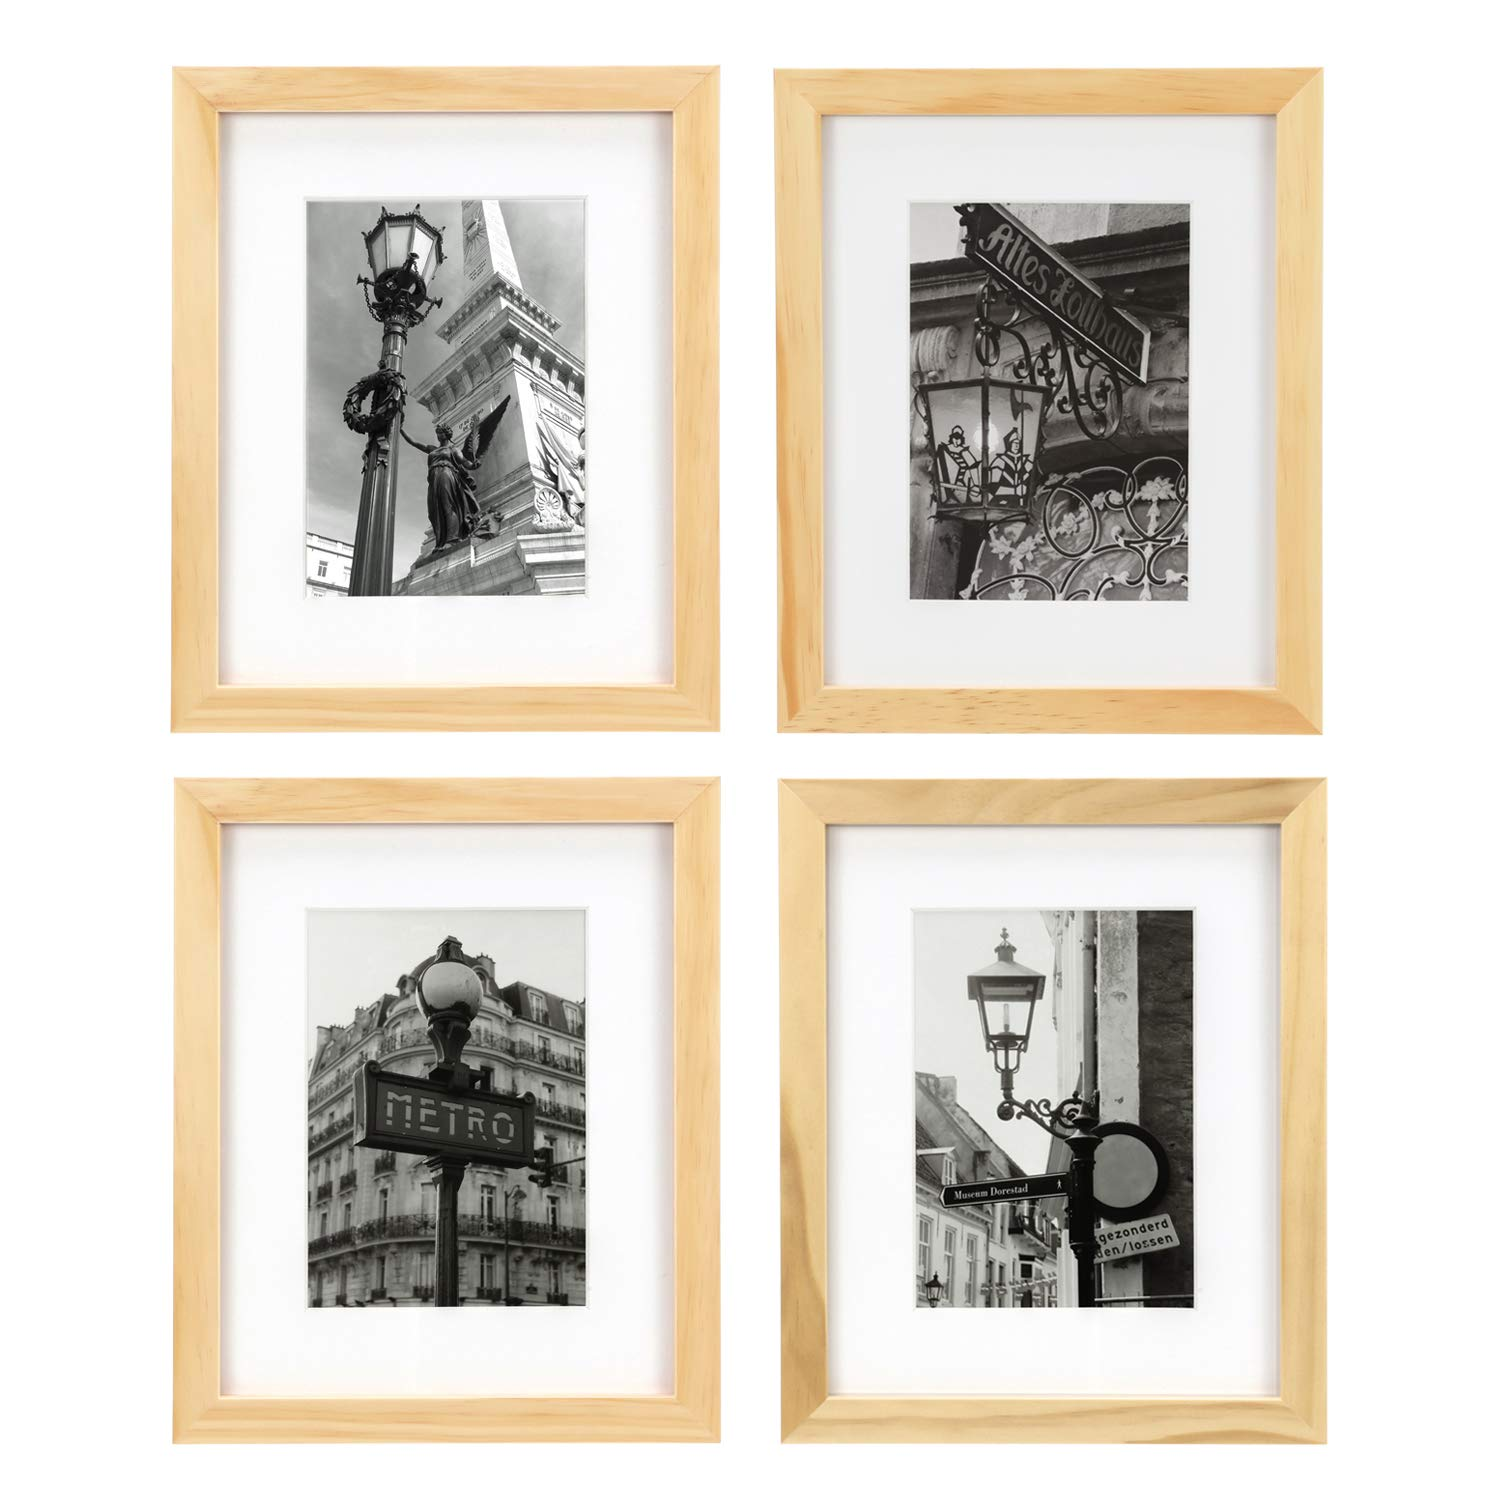 ONE WALL Tempered Glass 8x10 Picture Frame Solid Wooden Frame Set of 4 with Mats for 5x7 Photo - Natural Wood Color Frames for Wall Mounting or Tabletop - Mounting Hardware Included by ONE WALL